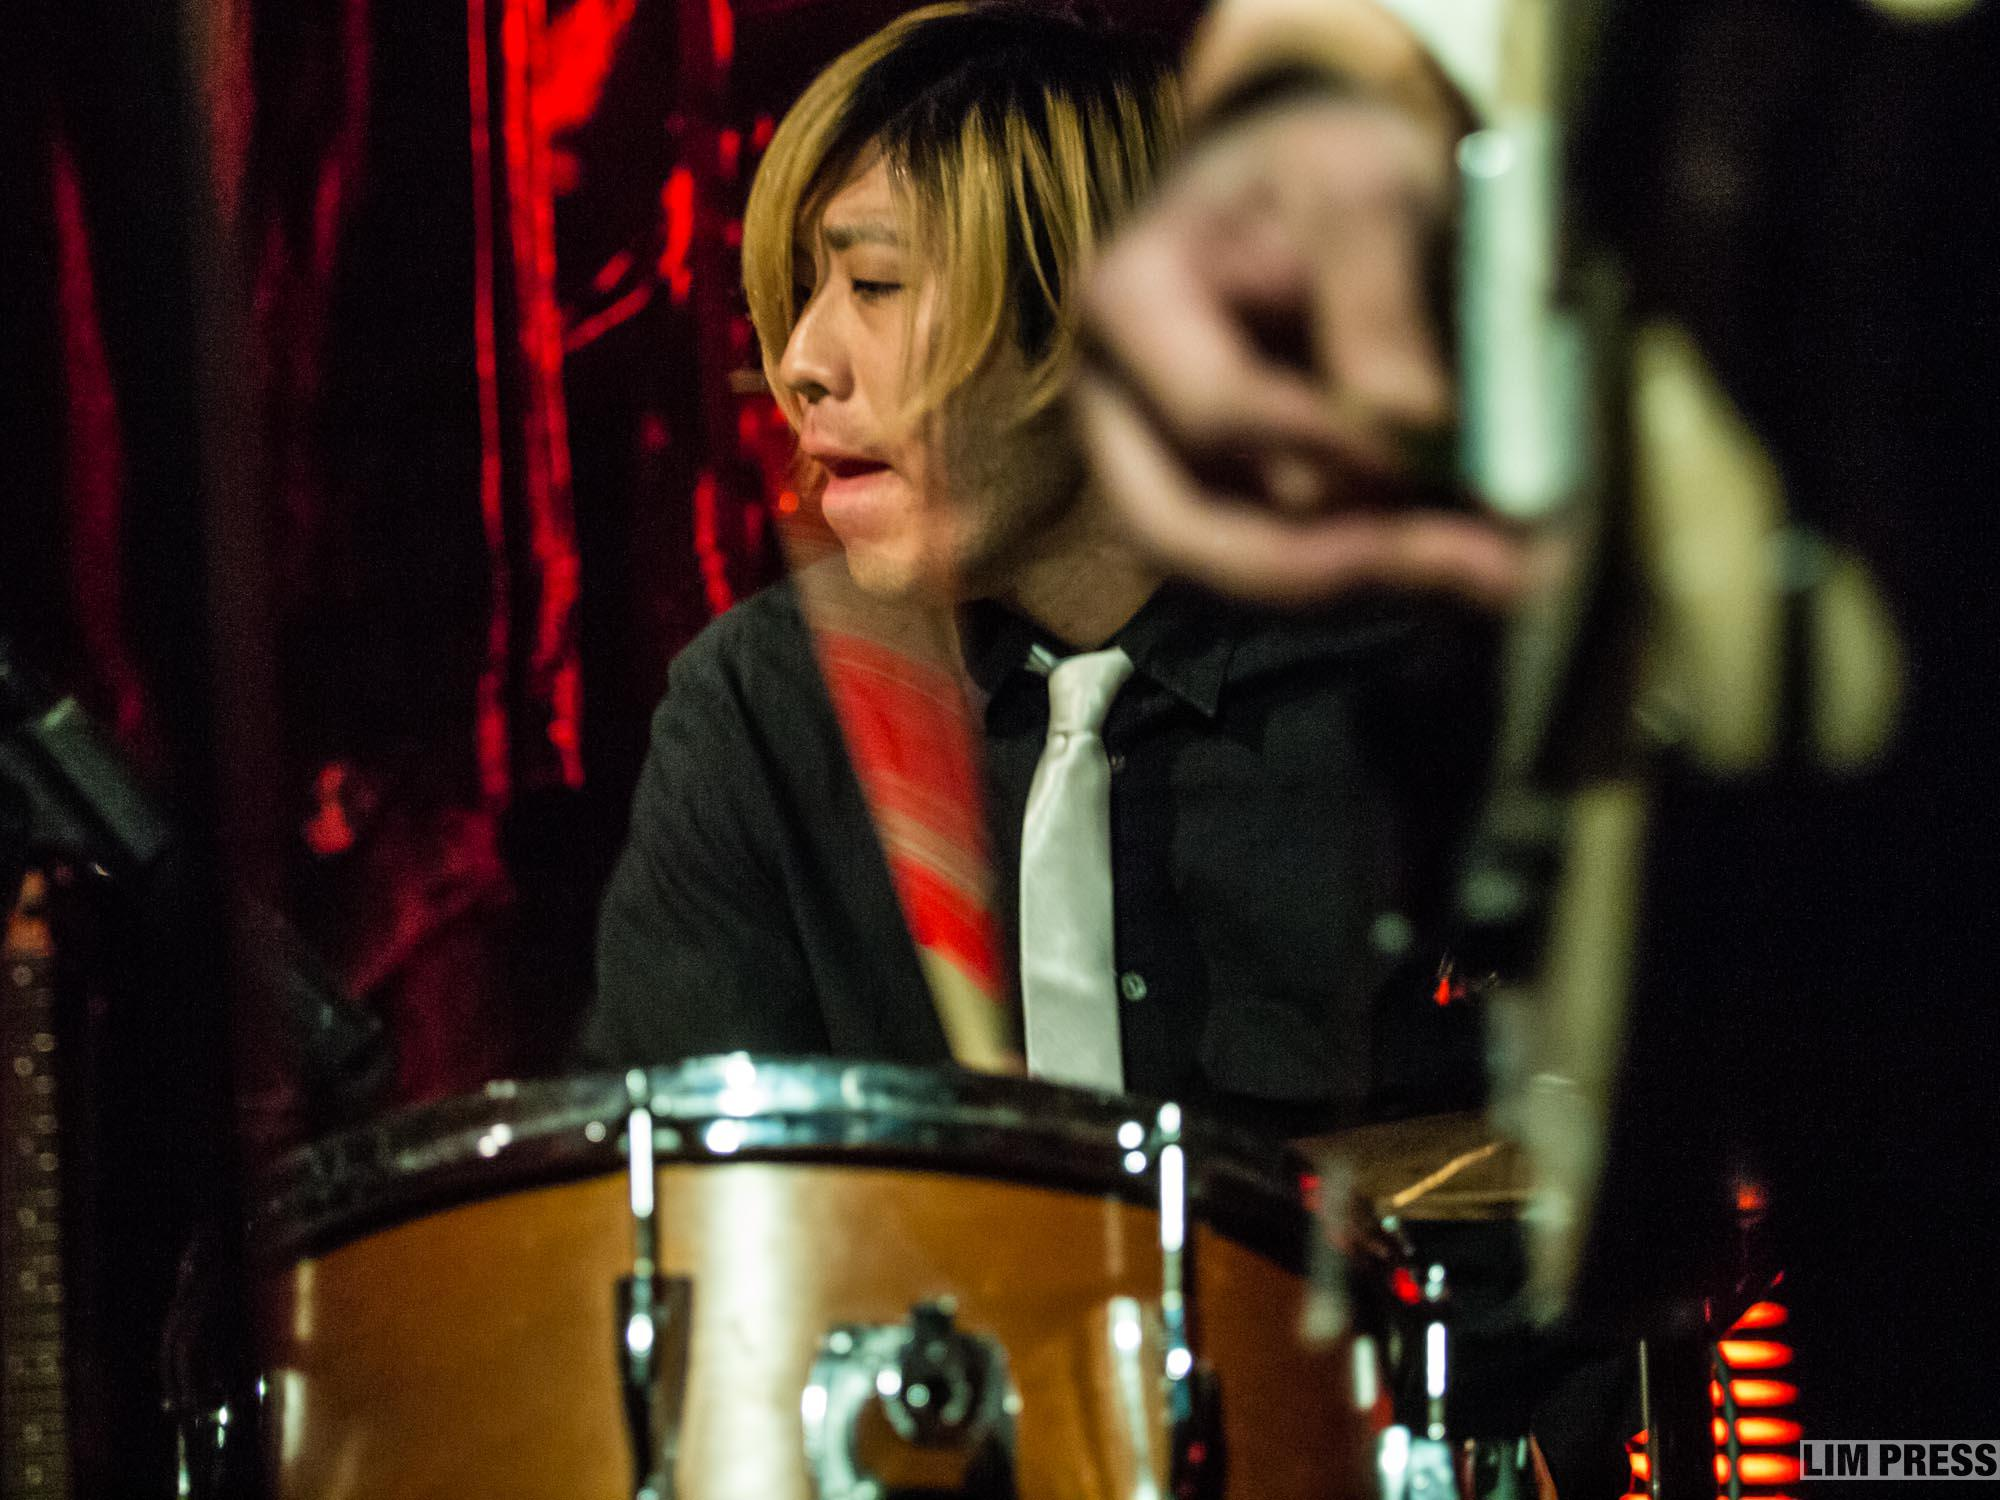 KING BROTHERS | 京都 西院ネガポジ | 2019.02.10